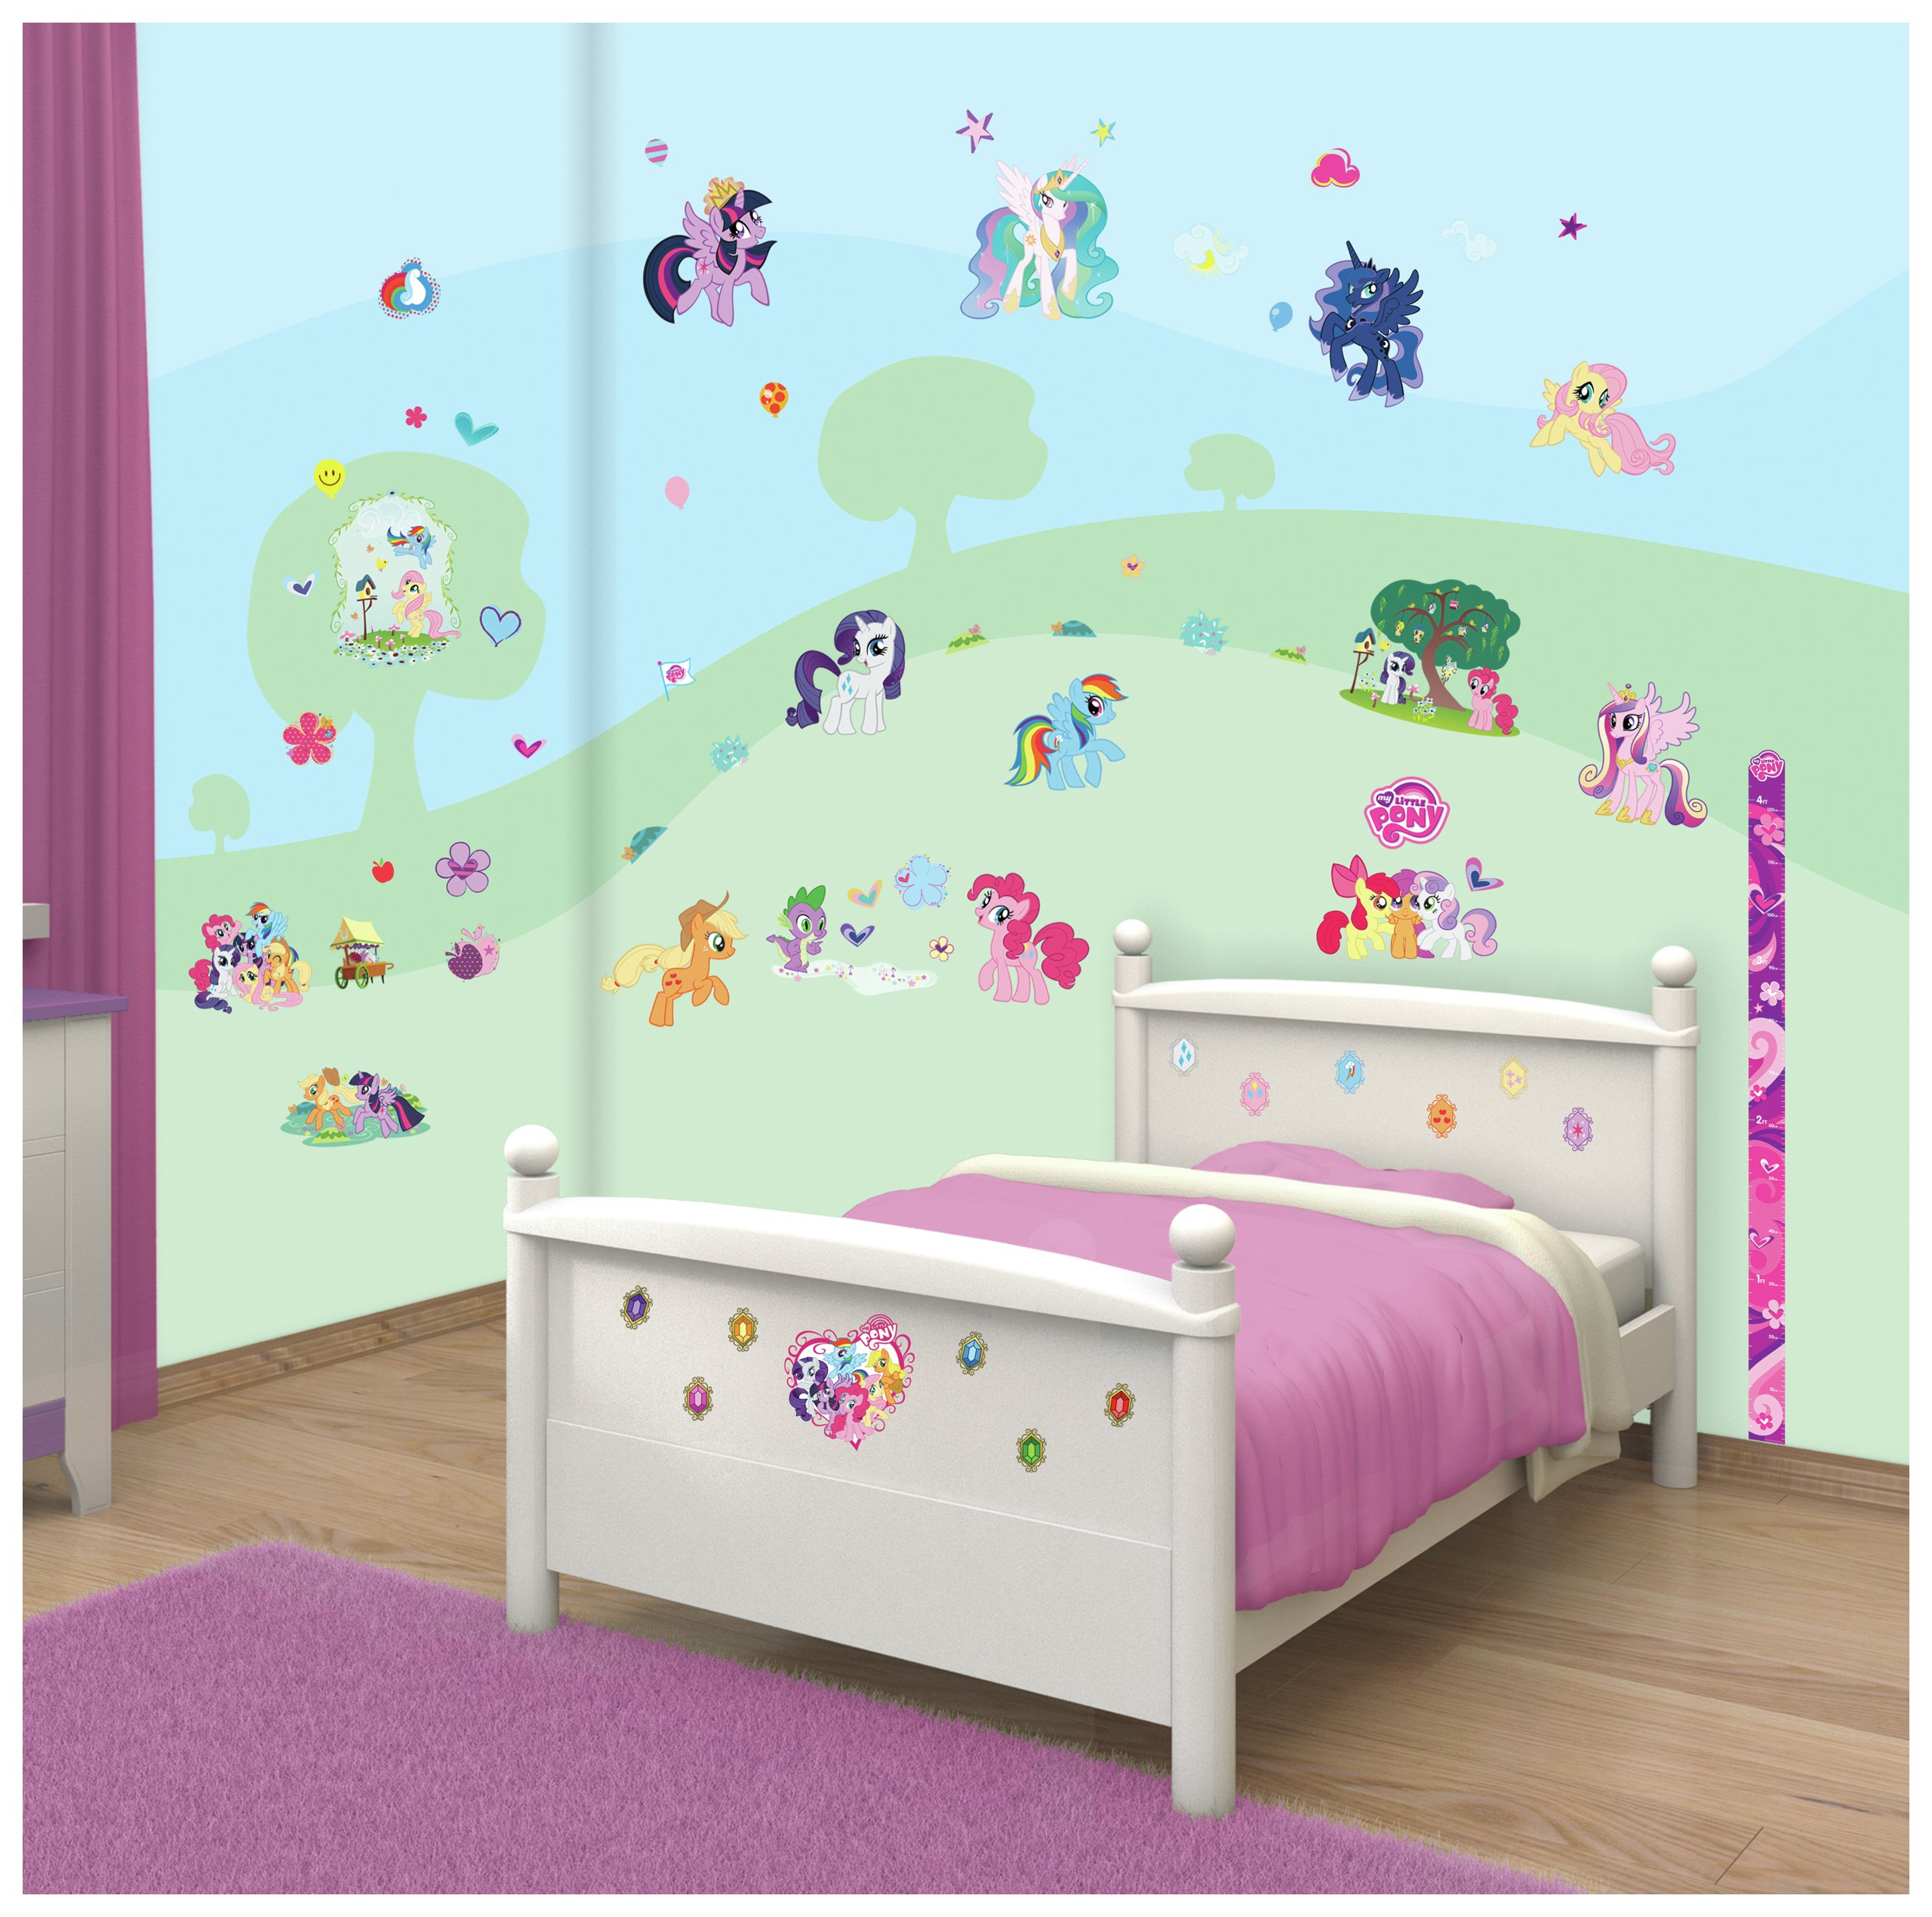 Walltastic My Little Pony Room Decor Kit Part 56